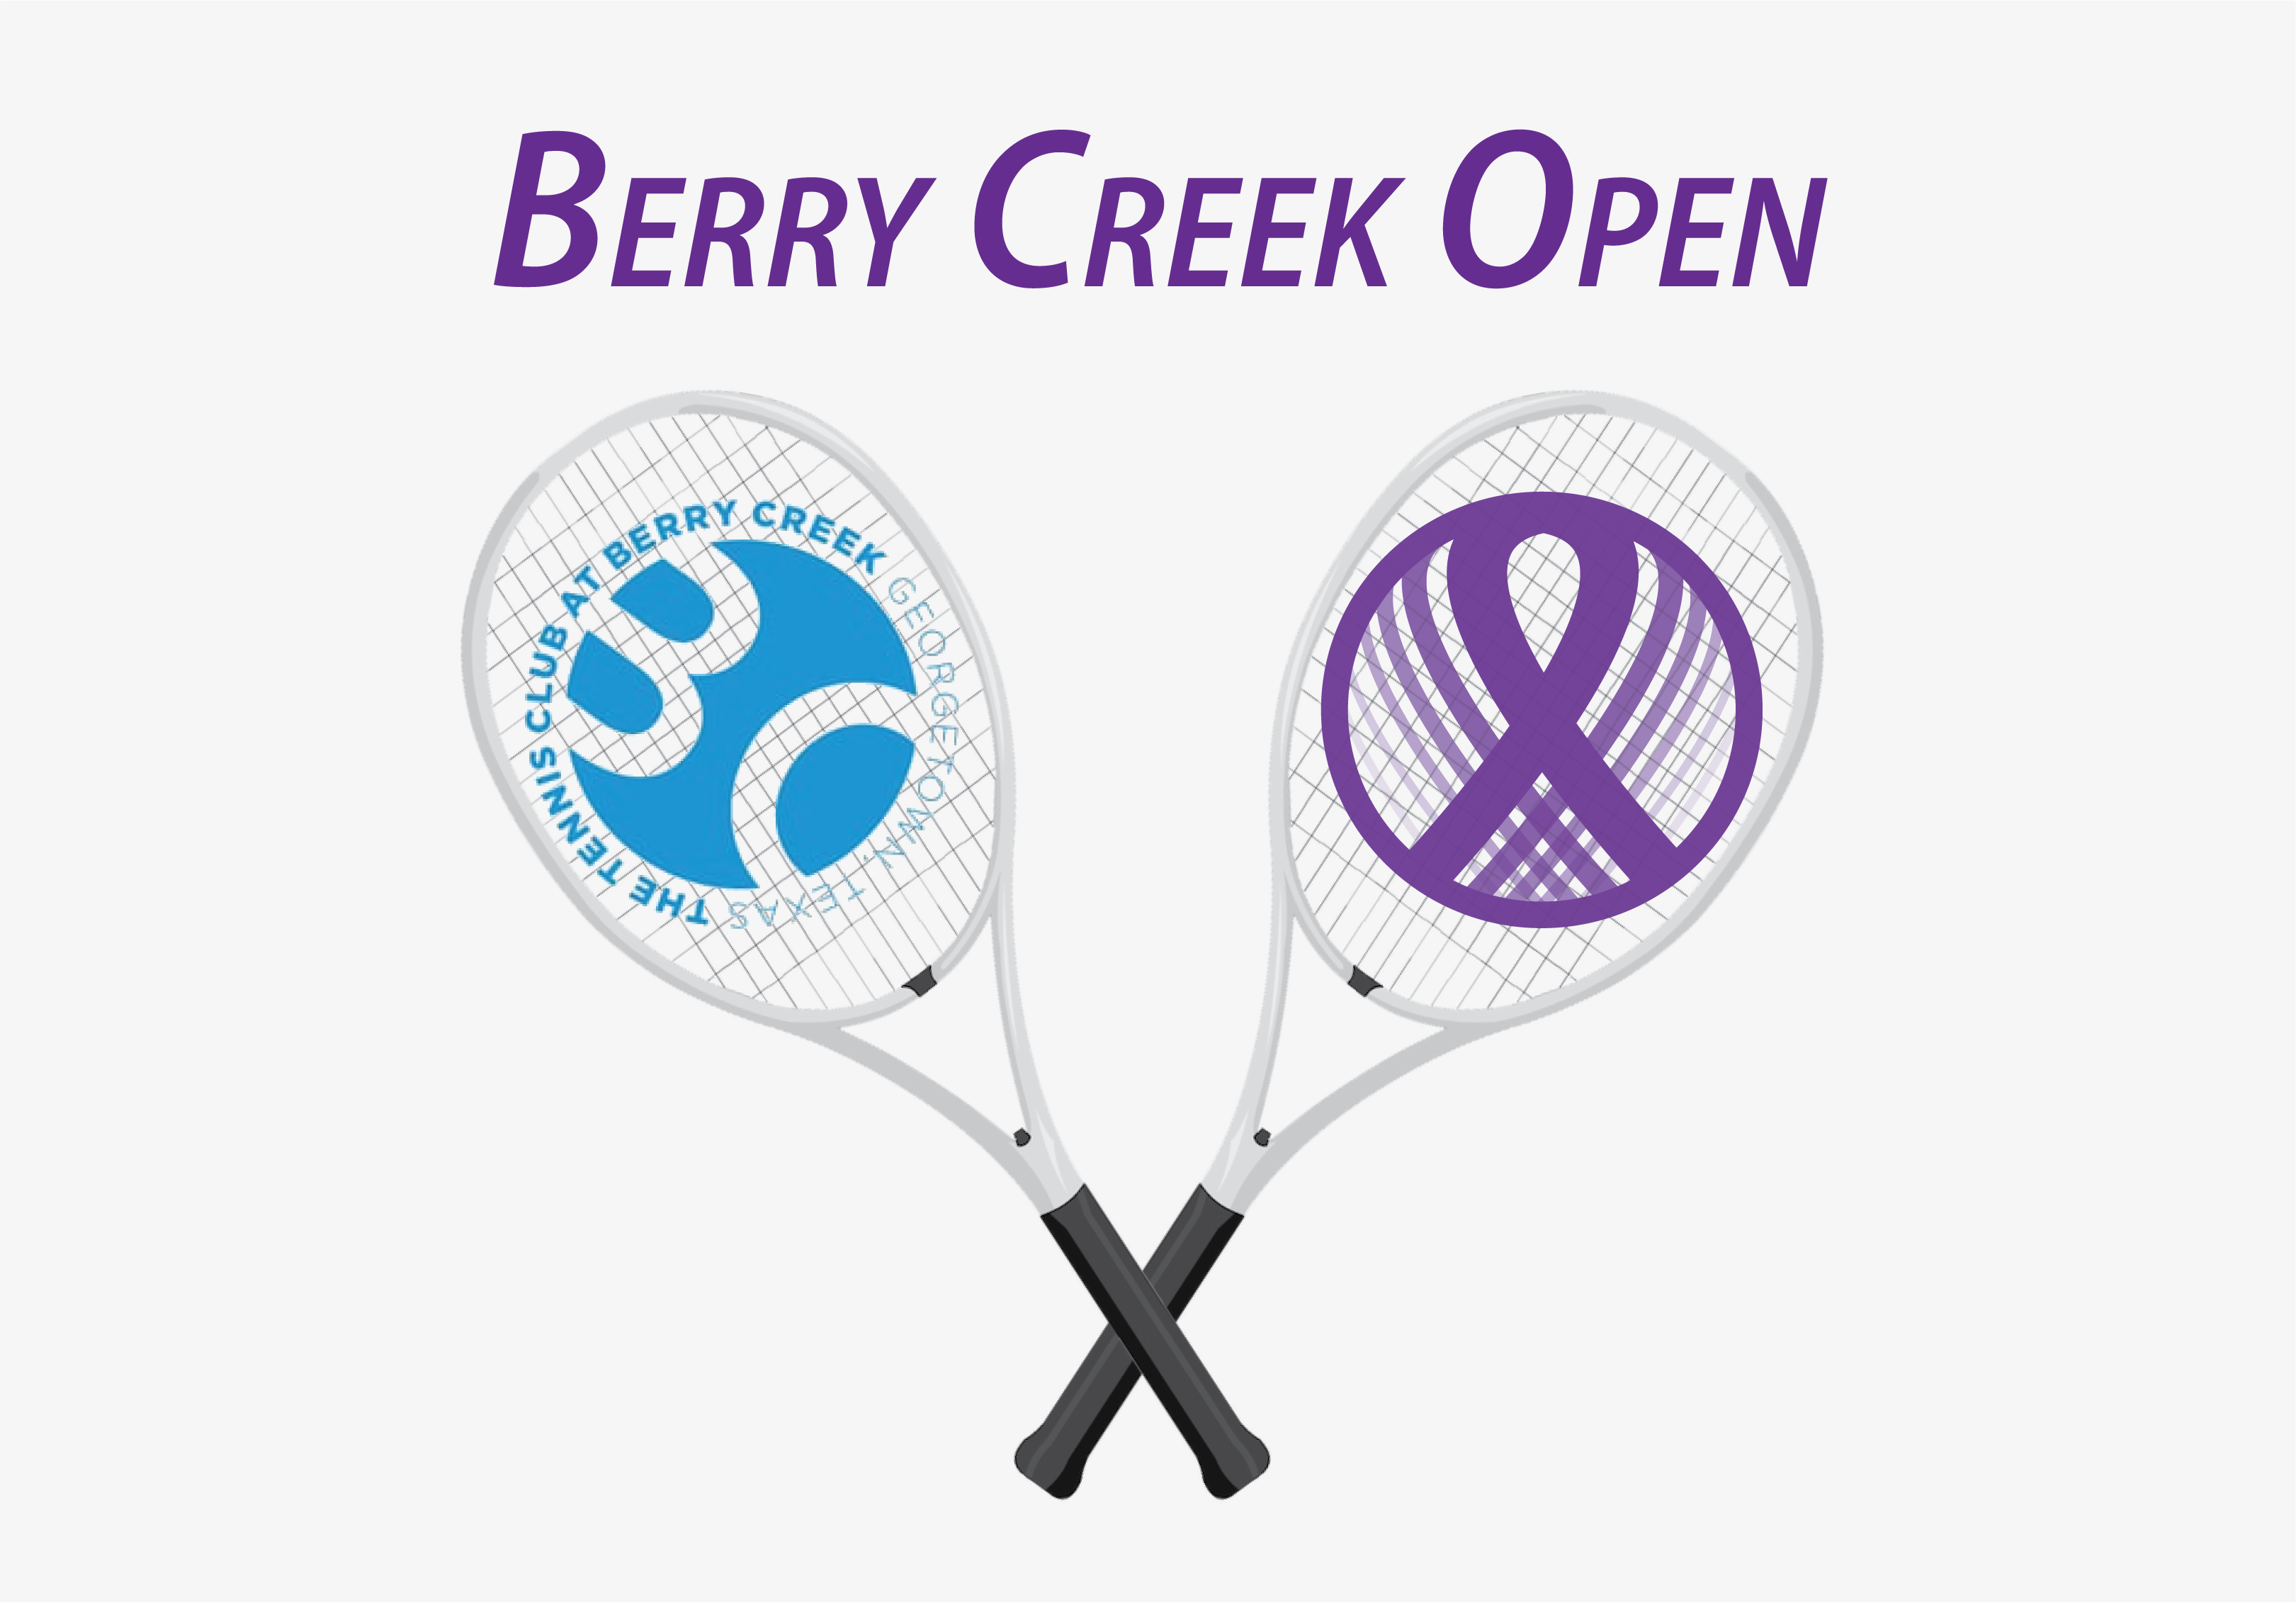 Berry Creek Open